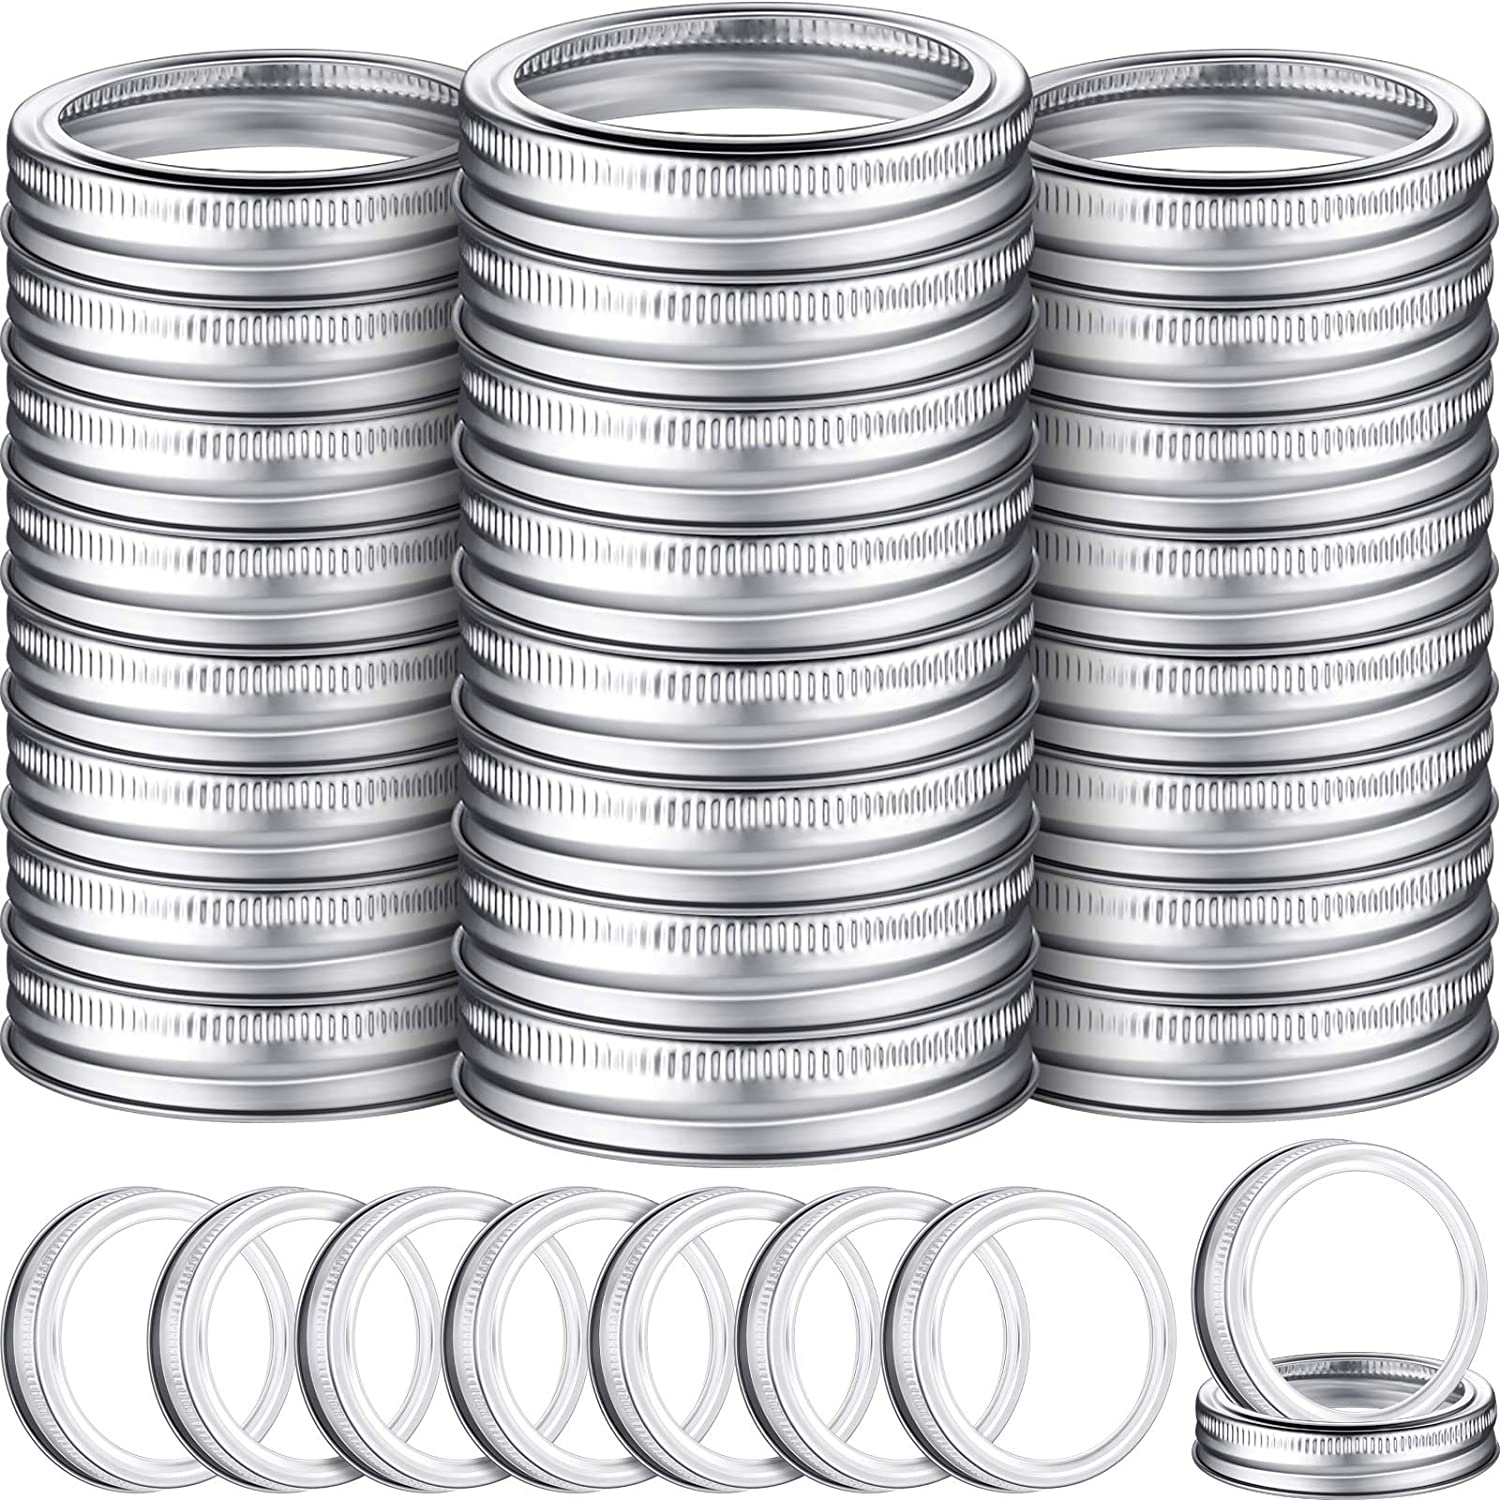 100 Pieces 70 mm Regular Jar Canning Replacem security Mouth Ring Indefinitely